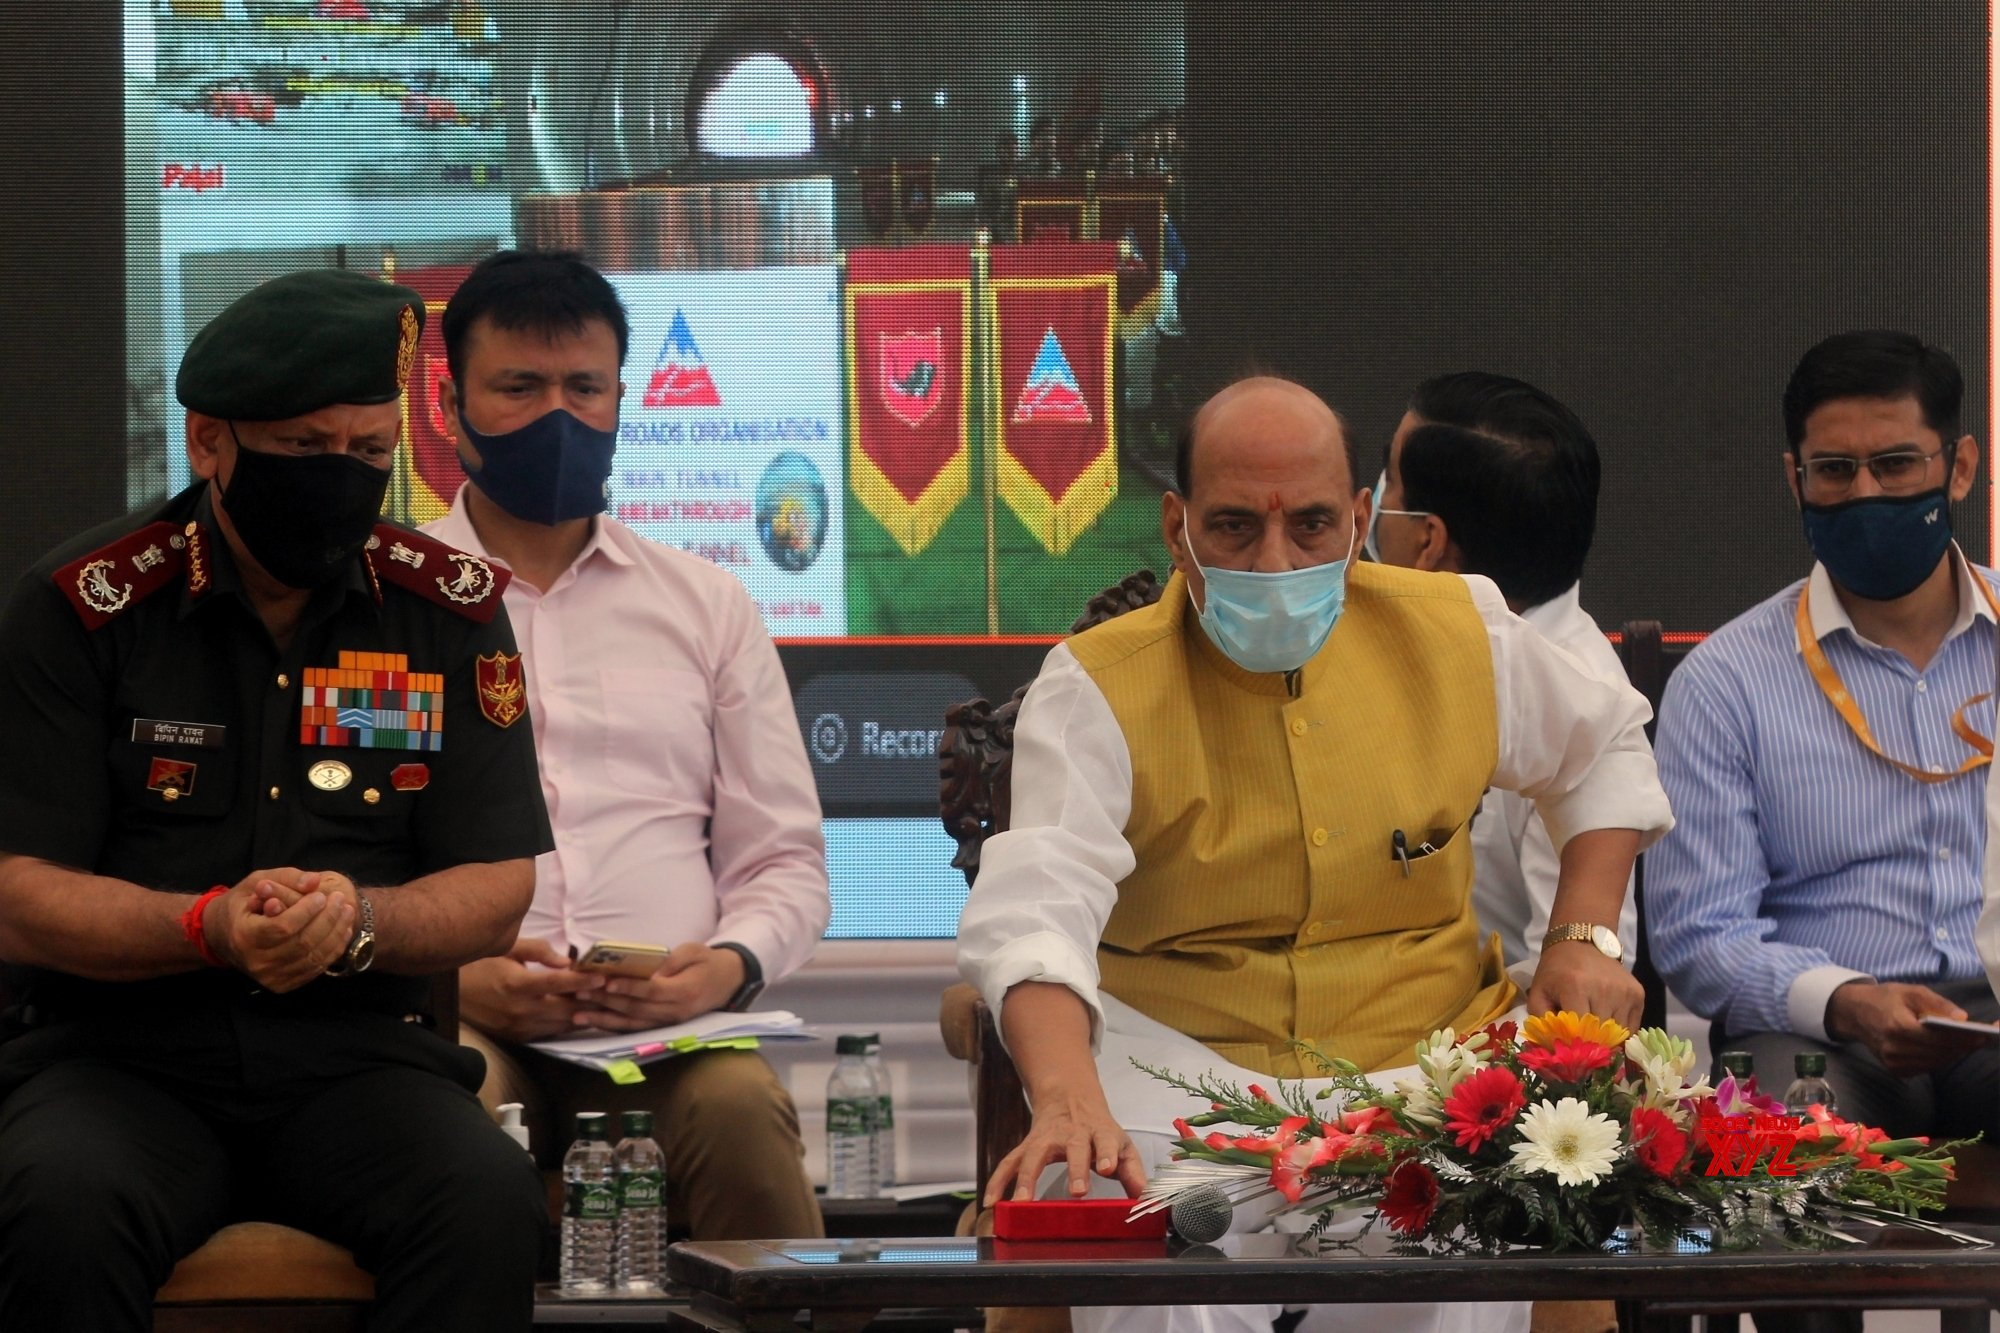 New Delhi: Union Defence Minister Rajnath Singh presides over breakthrough blast of Sela Main Tunnel vis video conferencing at an event organised by BRO India #Gallery